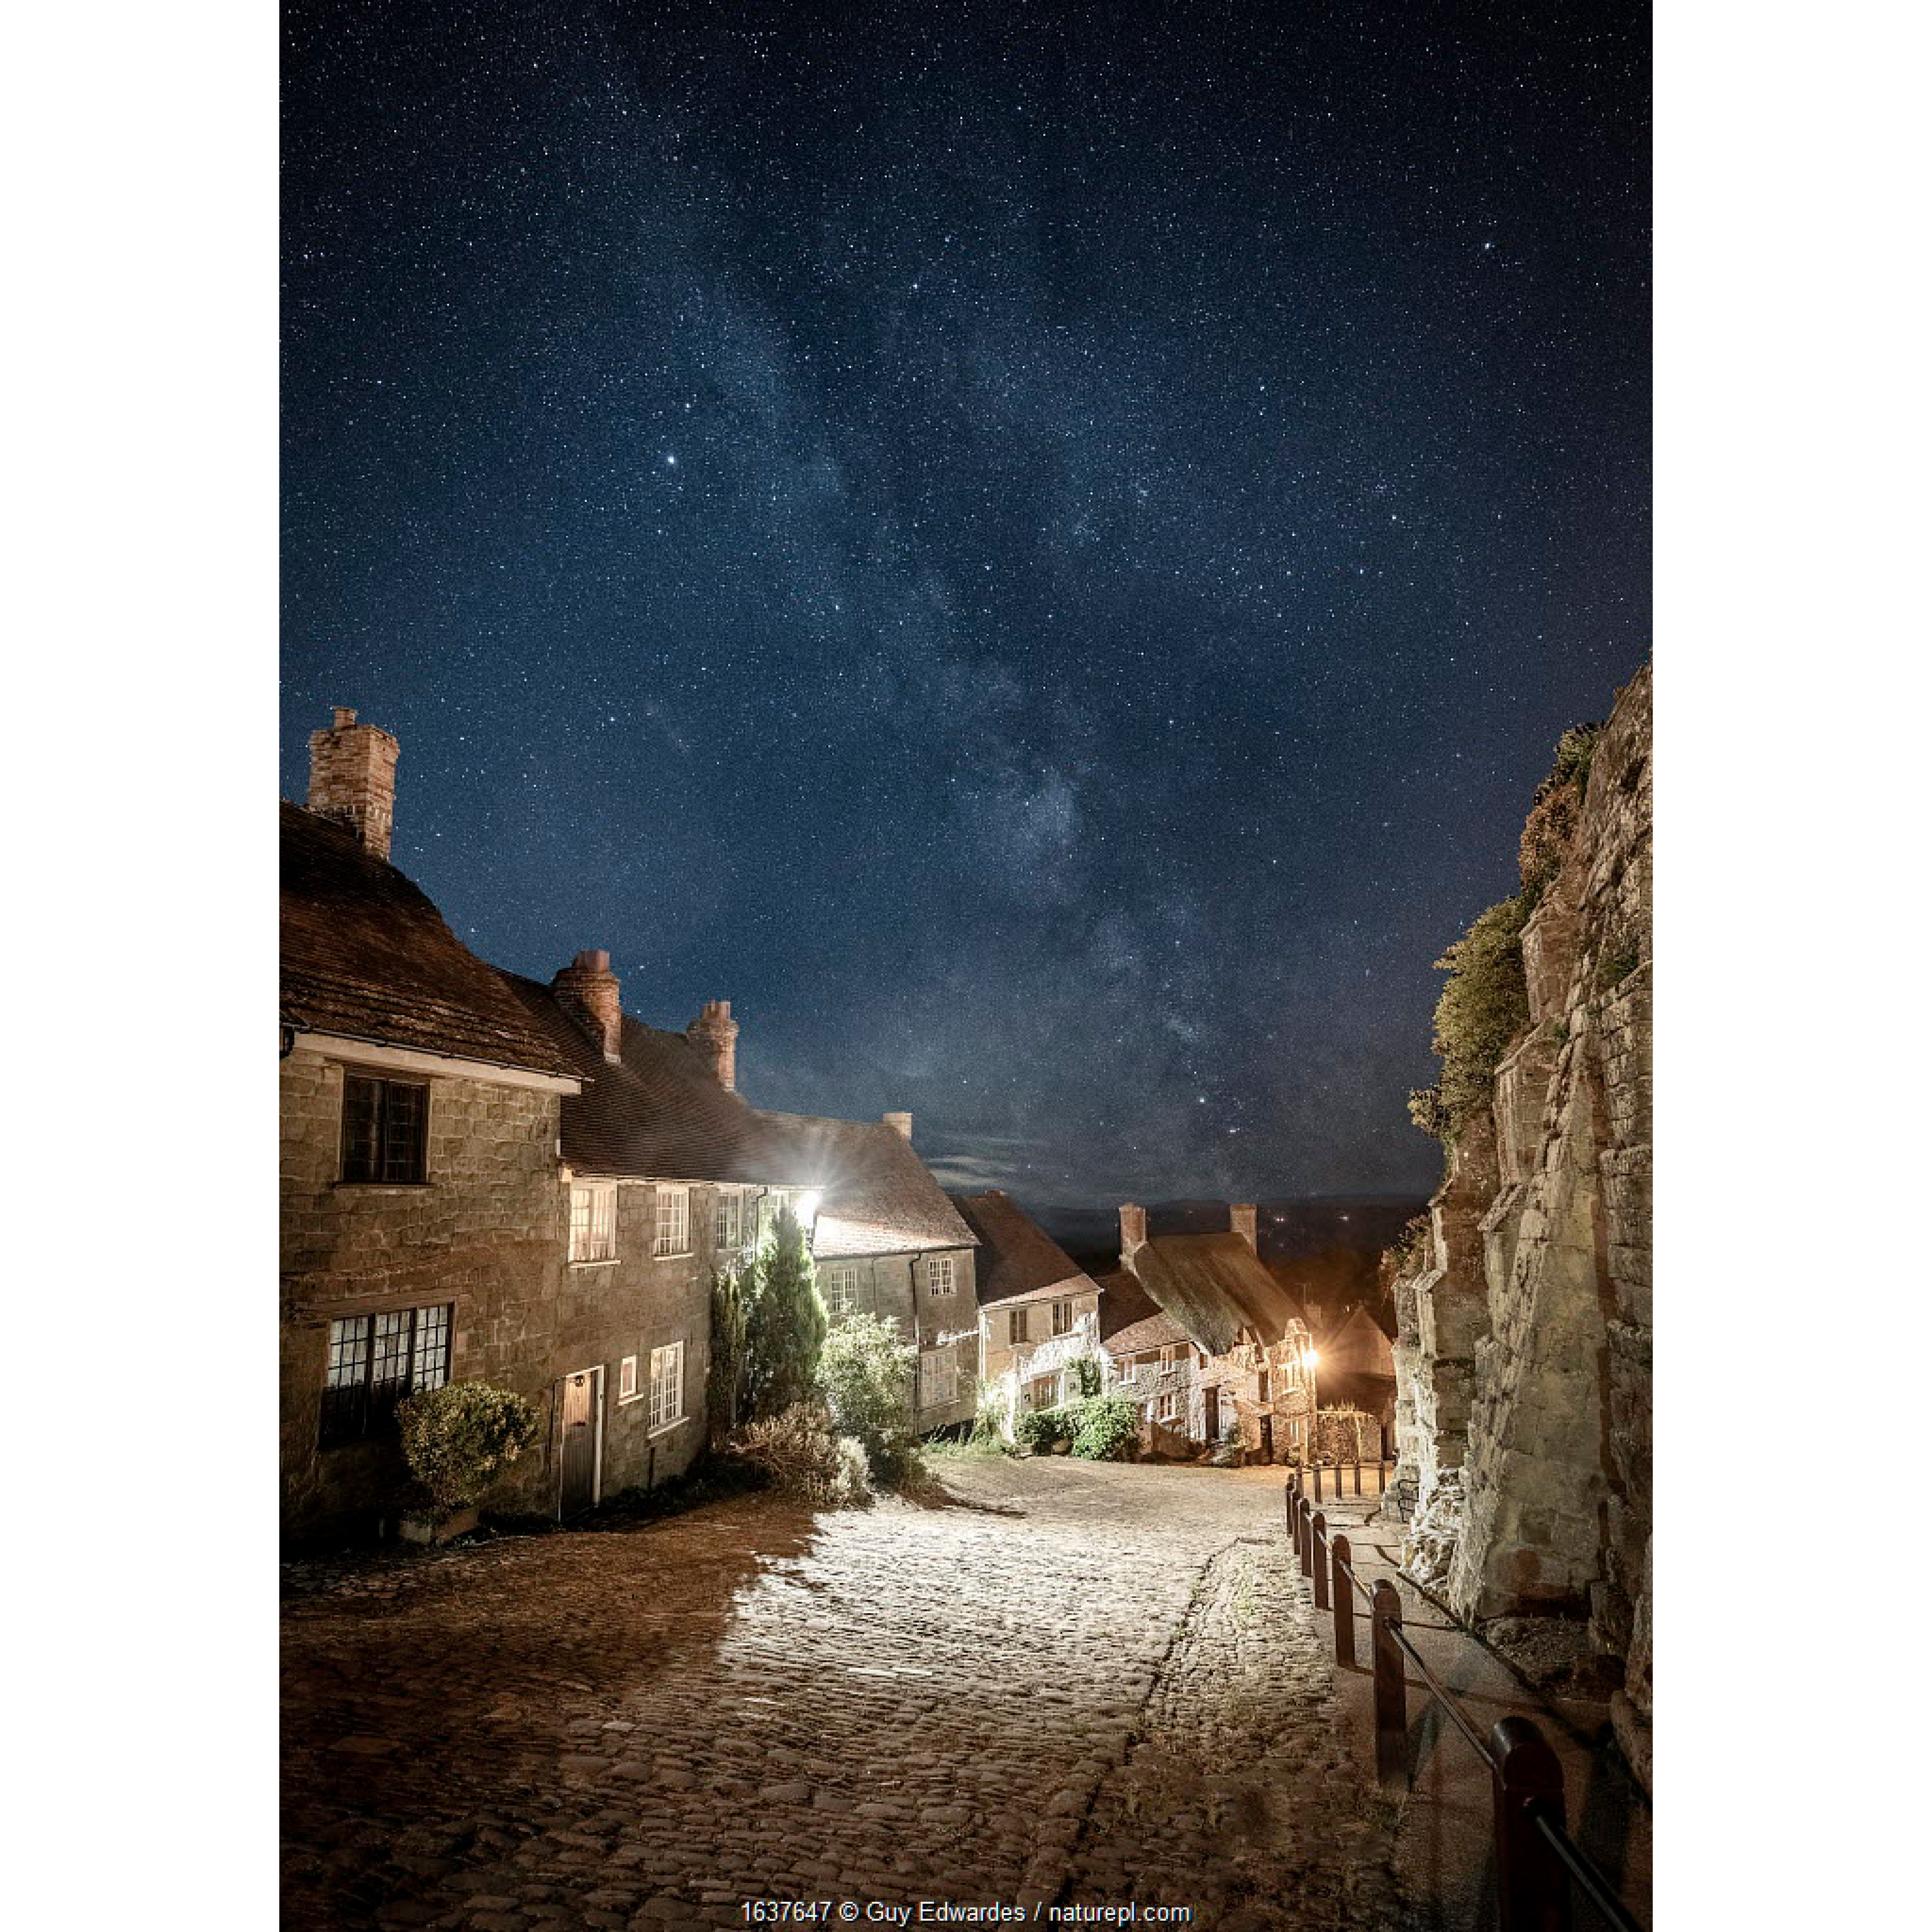 Gold Hill at night, with the Milky Way above, Shaftesbury, Dorset, England, UK, August 2018.